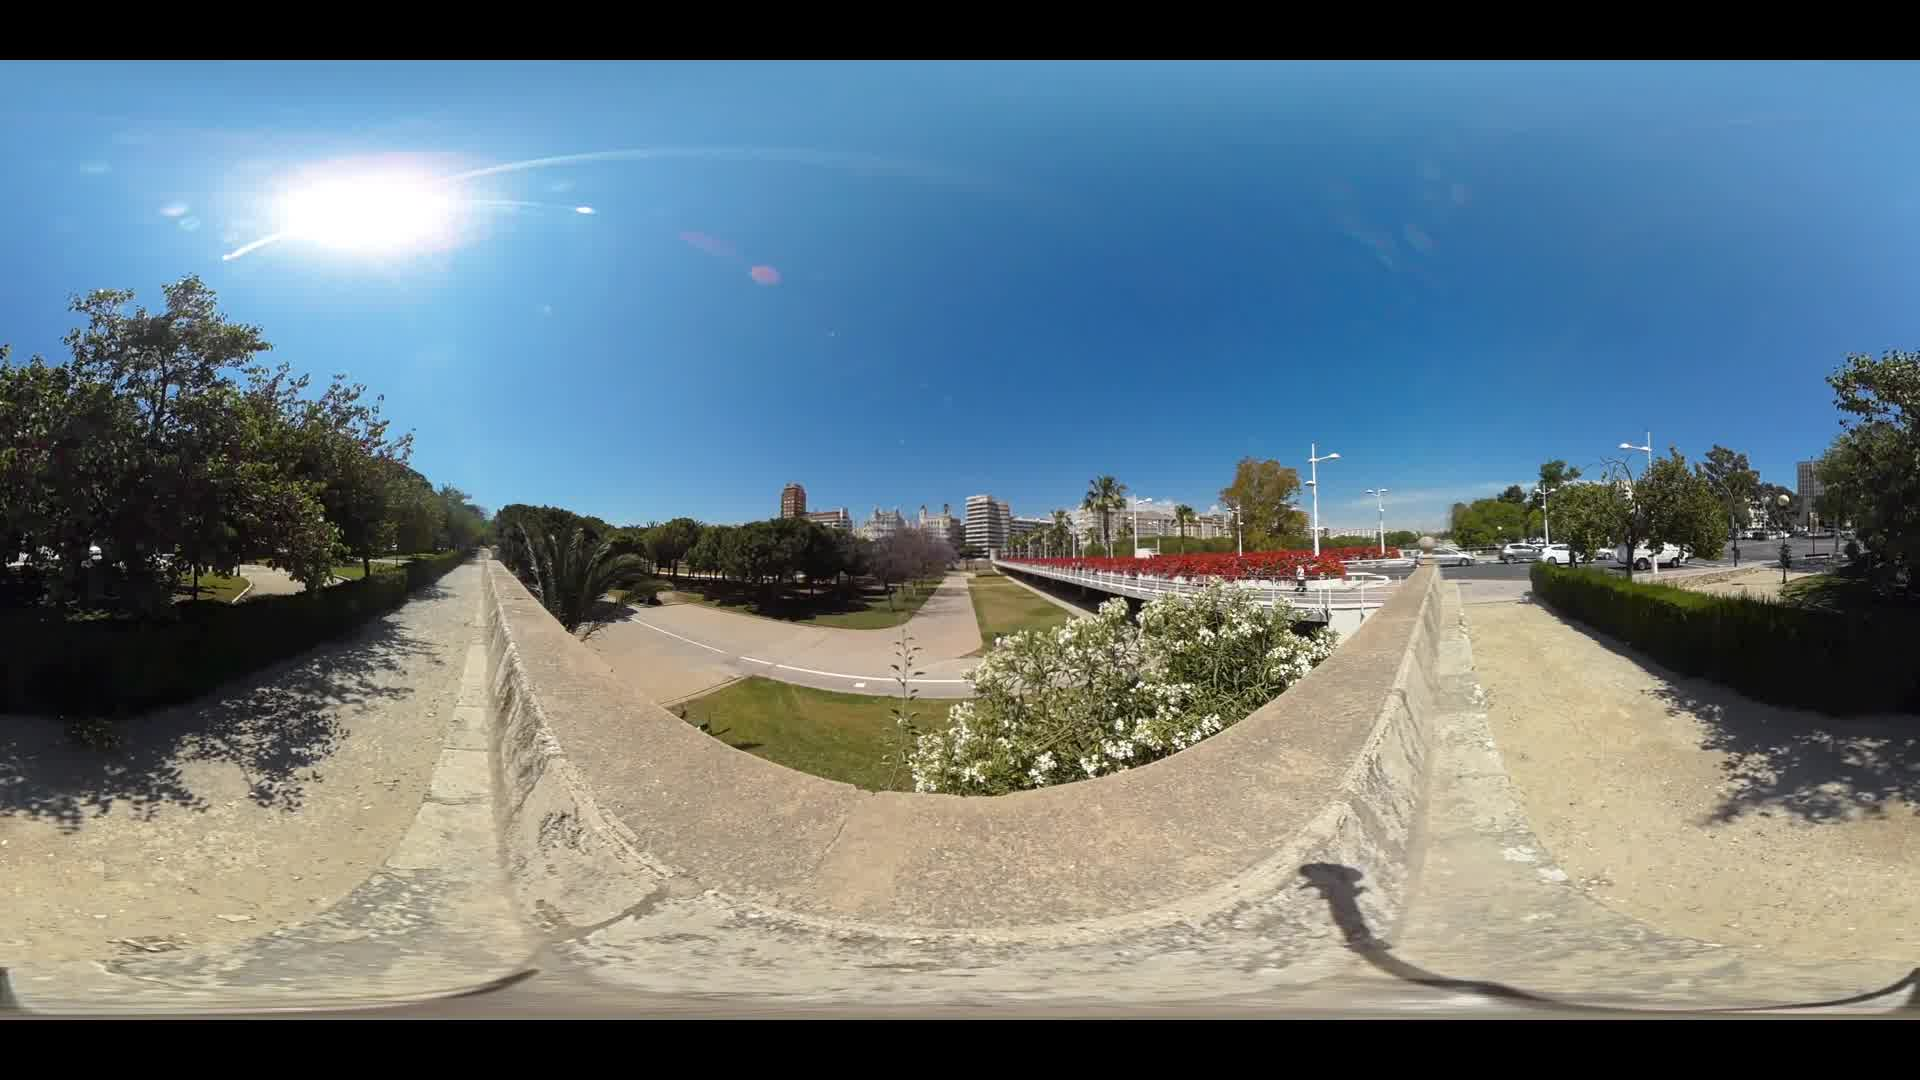 Virtual Reality 360 view from next to the Pont de les Flors in Valencia Spain